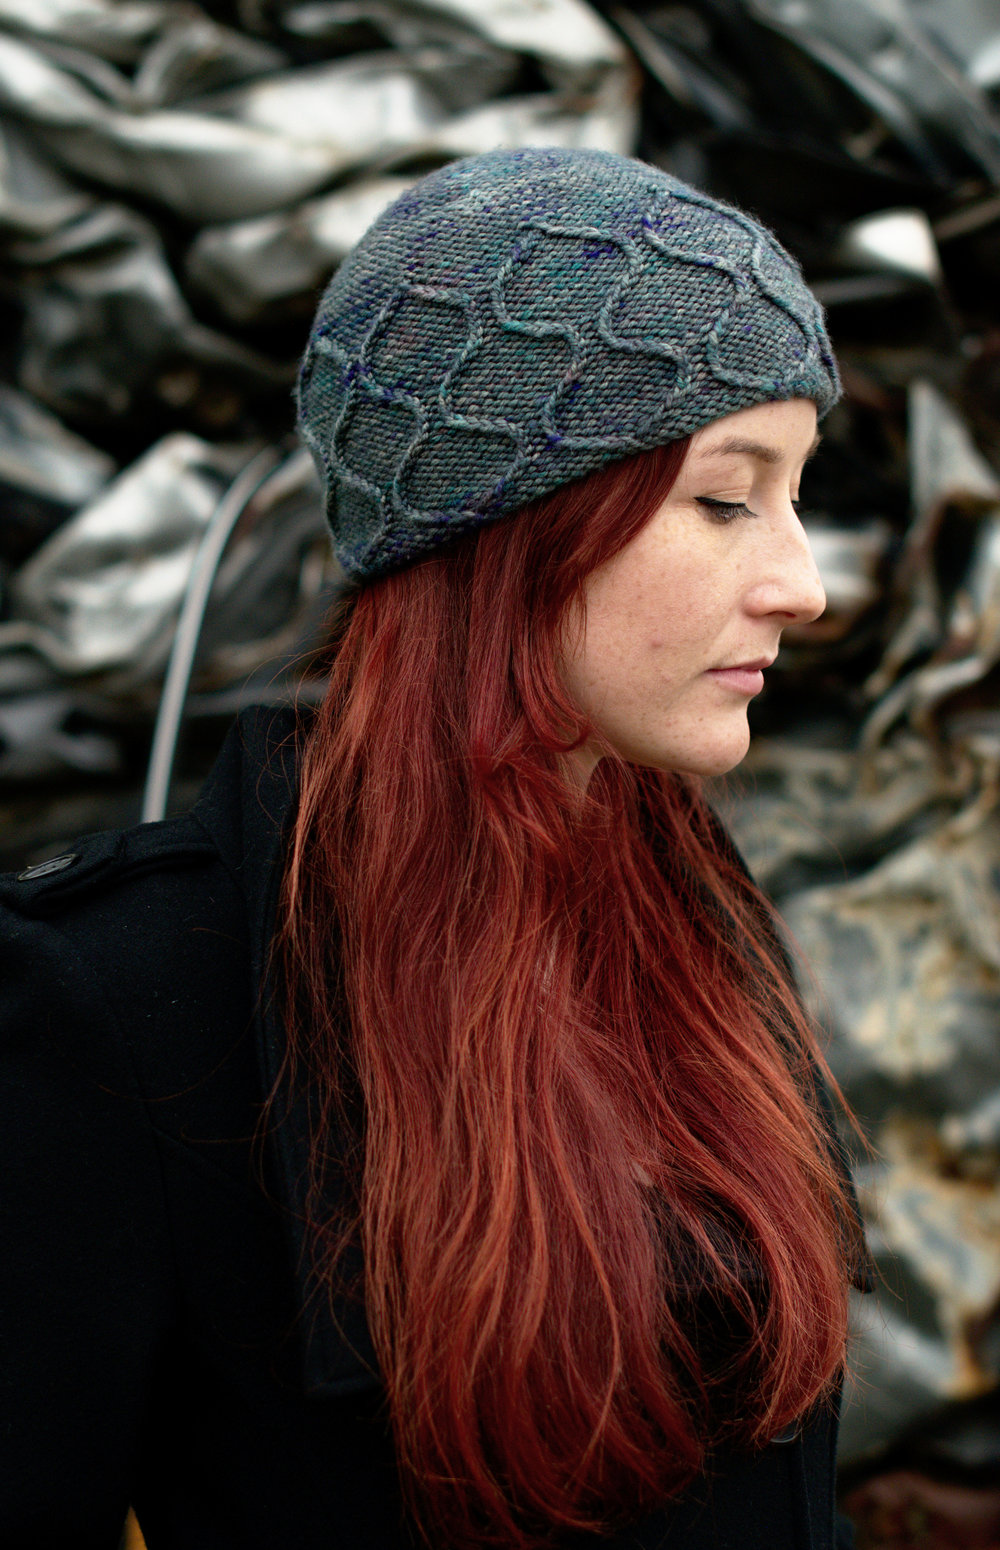 Filigree Beanie hand knitting pattern for worsted weight yarns